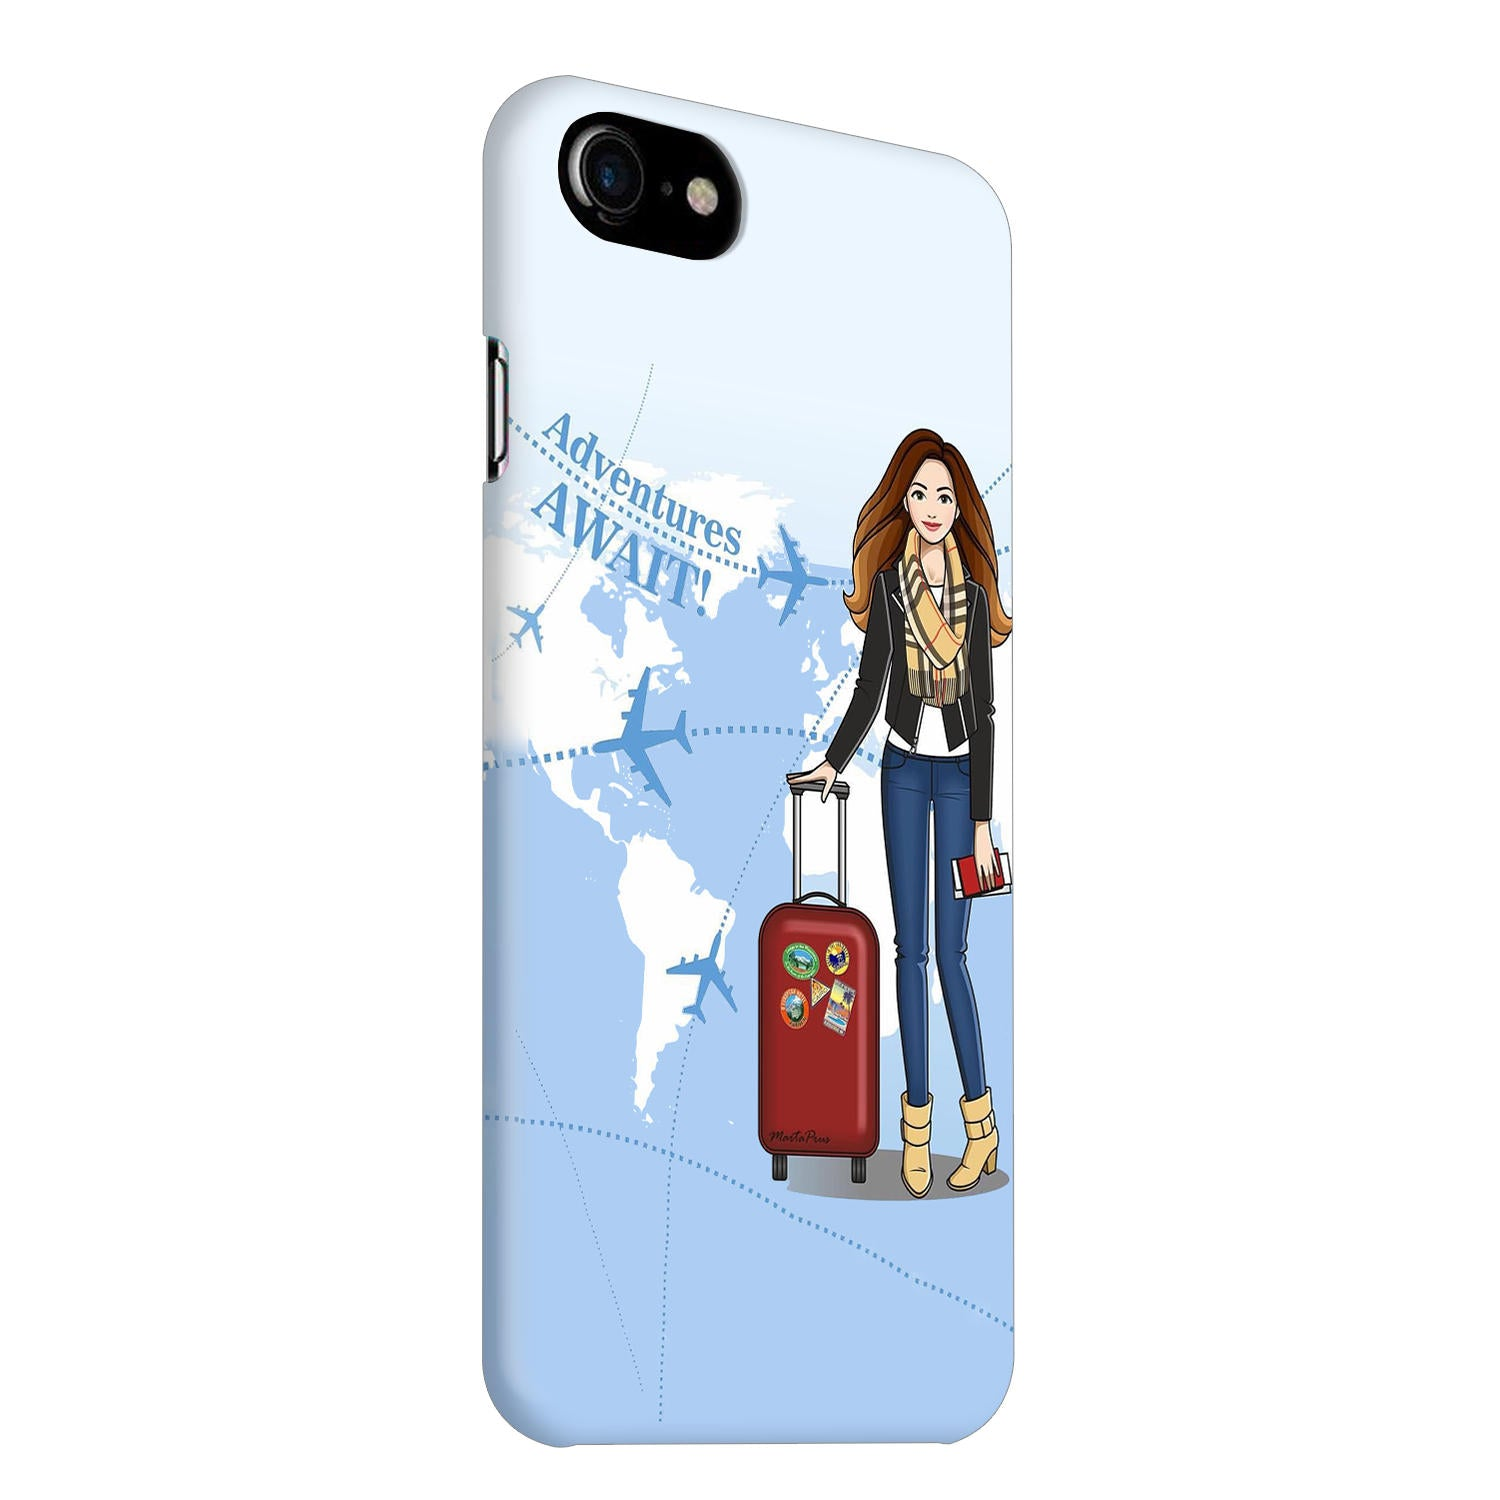 Girl Travel Adventure Await iPhone 8 Mobile Cover Case - MADANYU